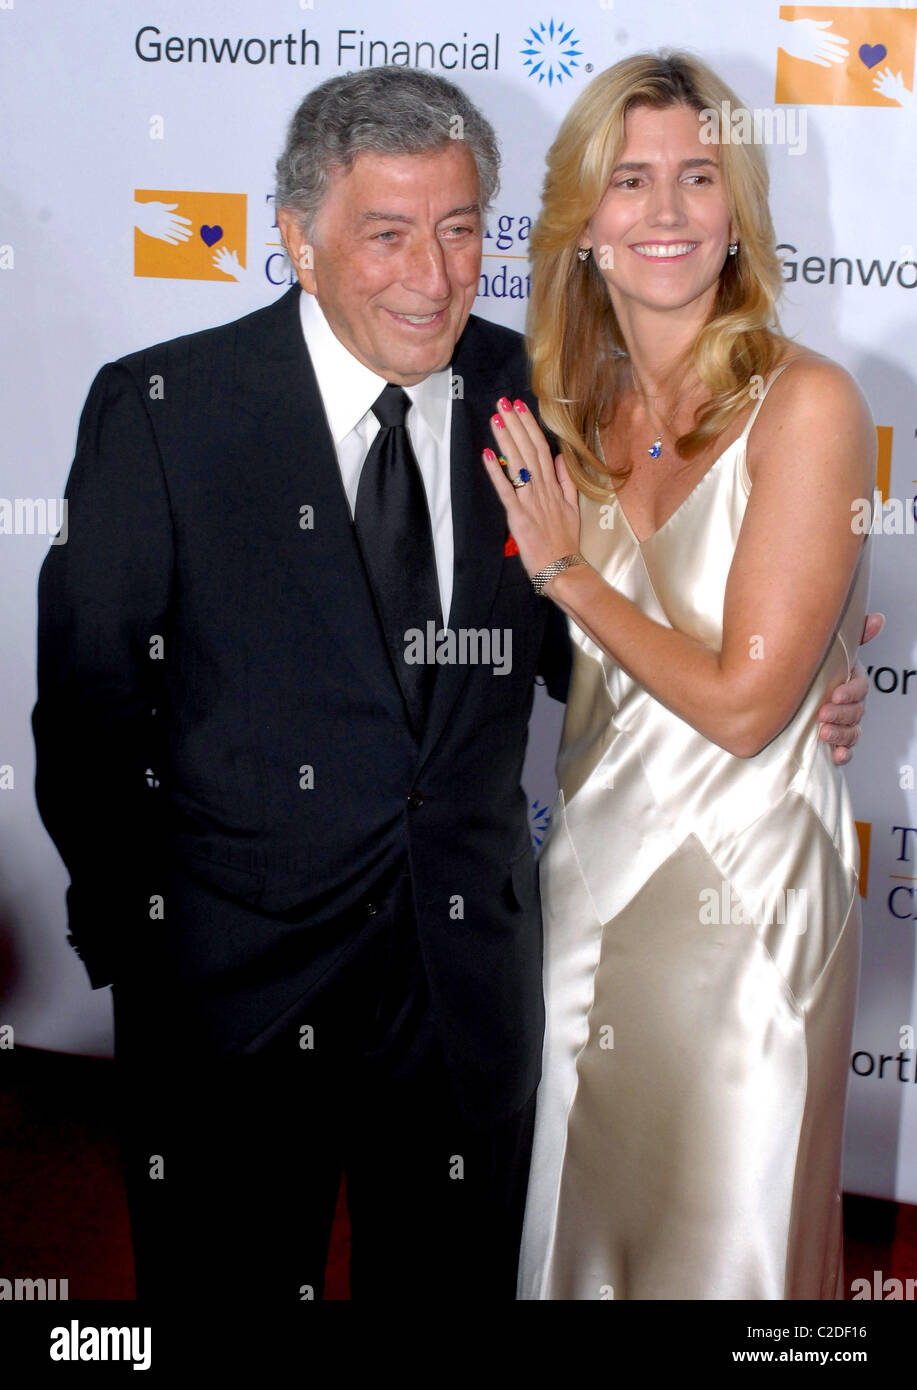 Tony Bennett and Susan Crow Andre Agassi Grand Slam for Children benefit at the MGM Grand Las Vegas, Nevada - 06.10.07 - Stock Image